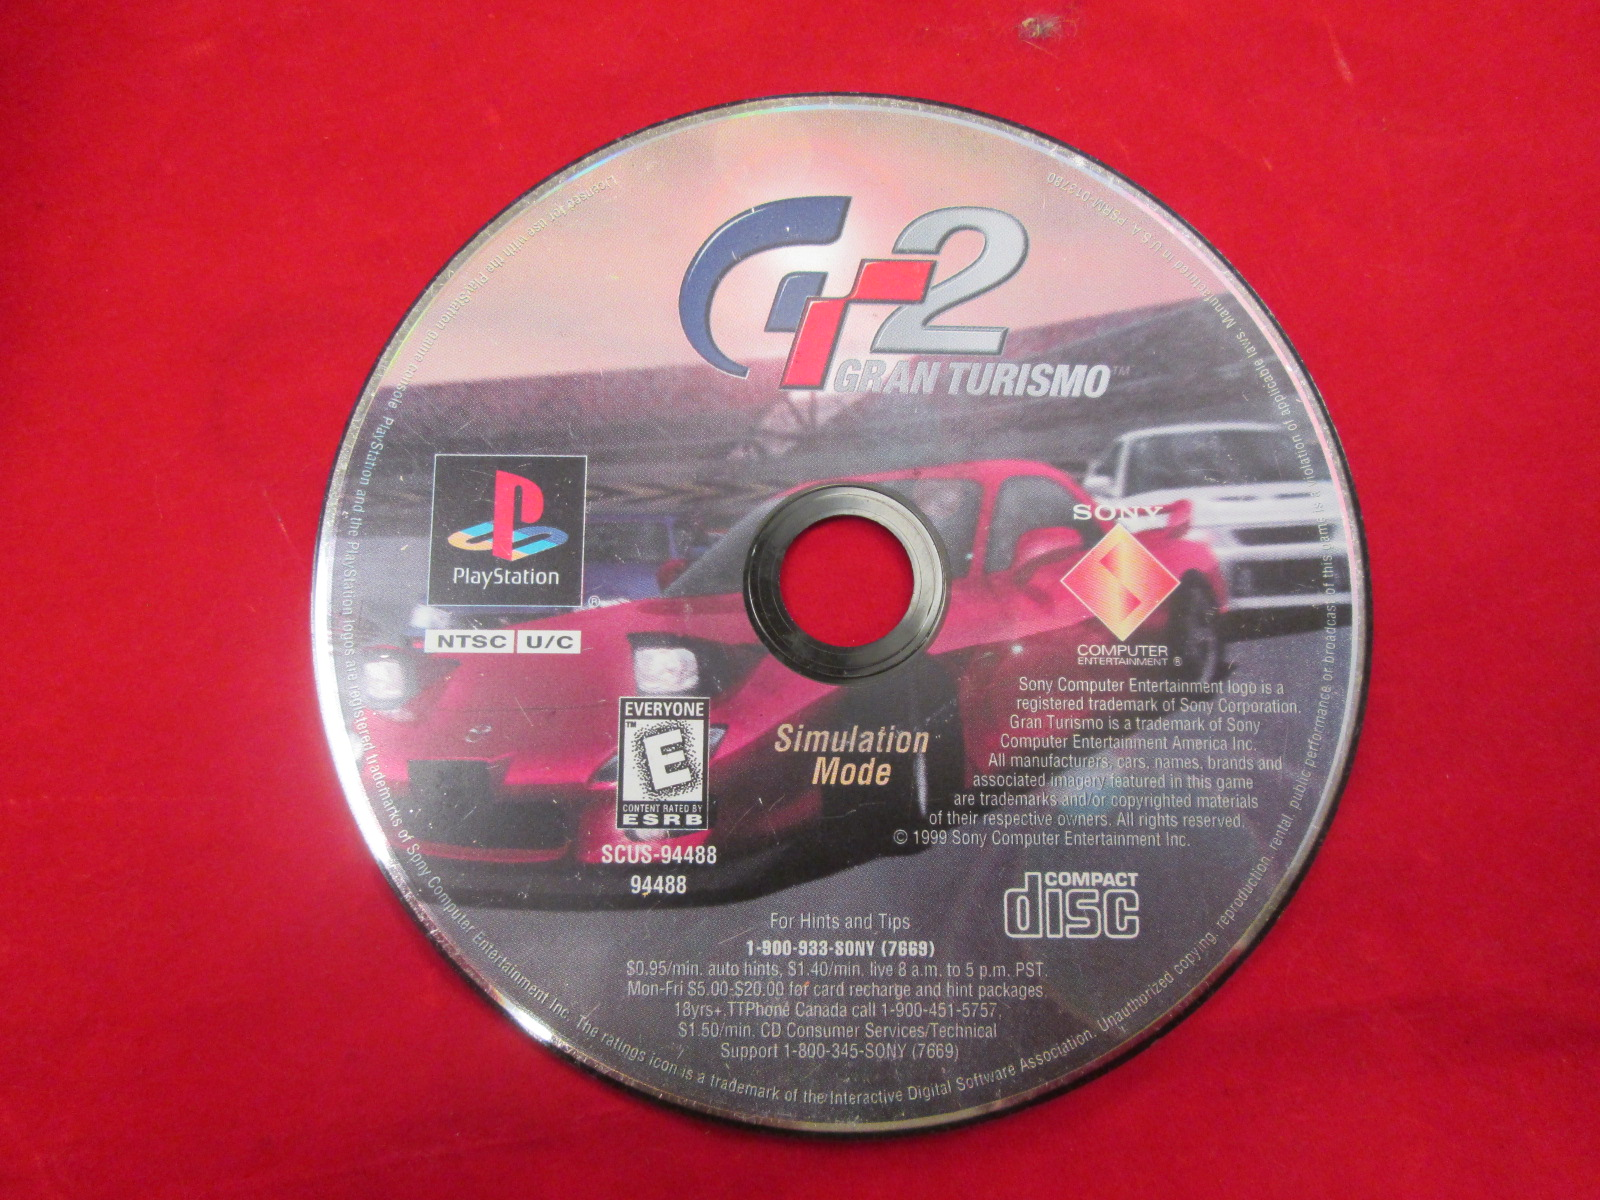 Replacement Simulation Disc For Gran Turismo 2 For PlayStation 1